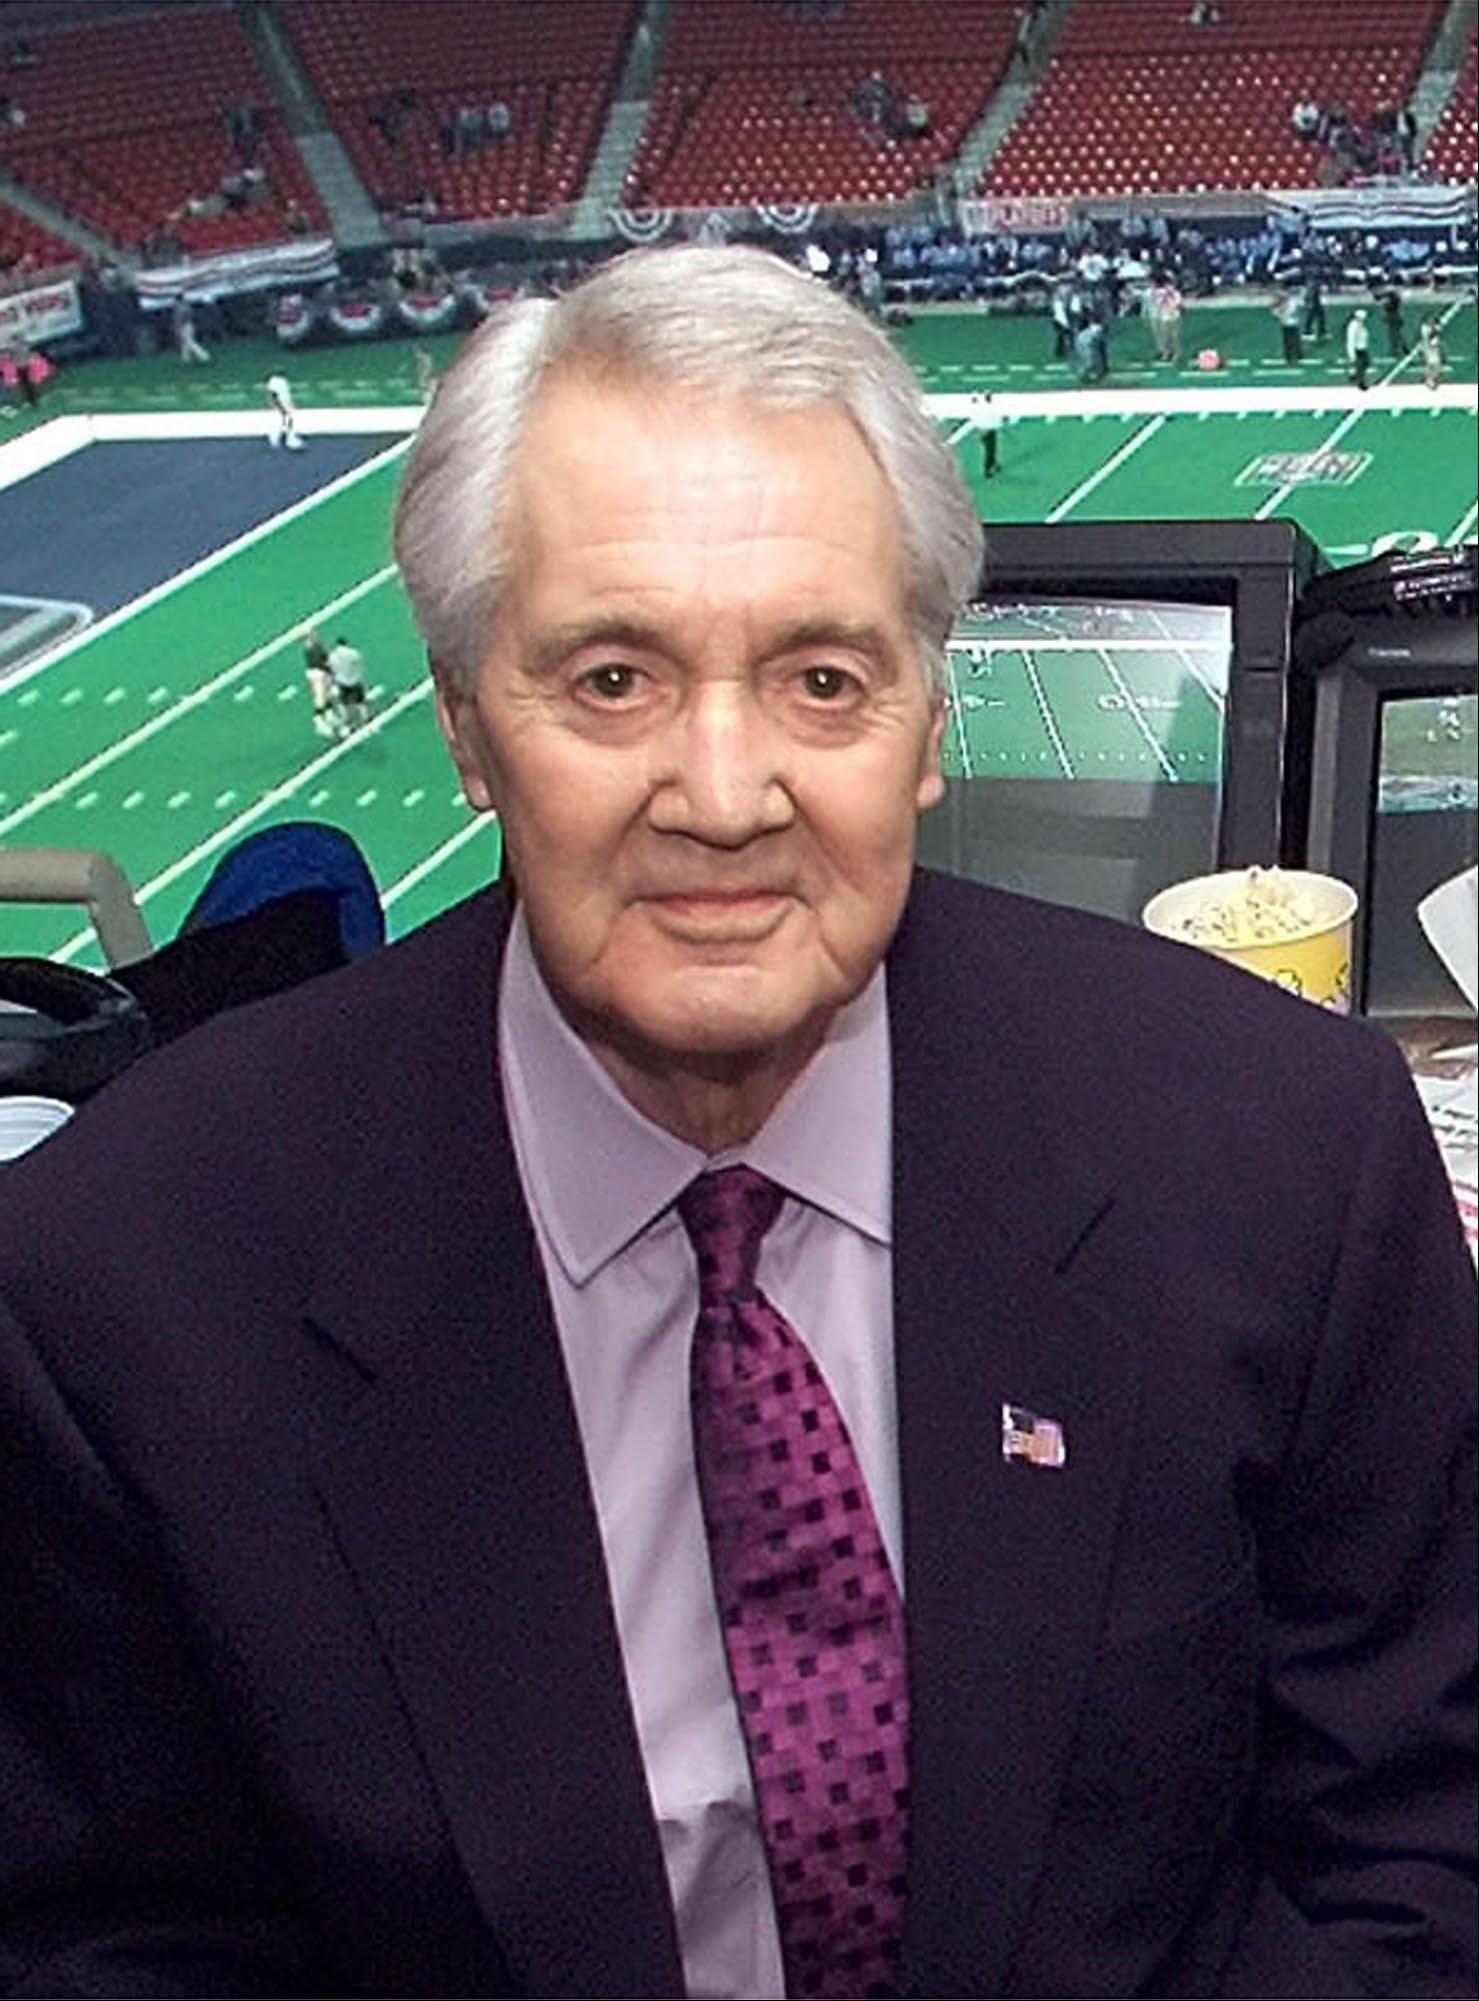 Pat Summerall, the NFL player-turned-broadcaster, has died at age 82, according to a Fox Sports spokesman.